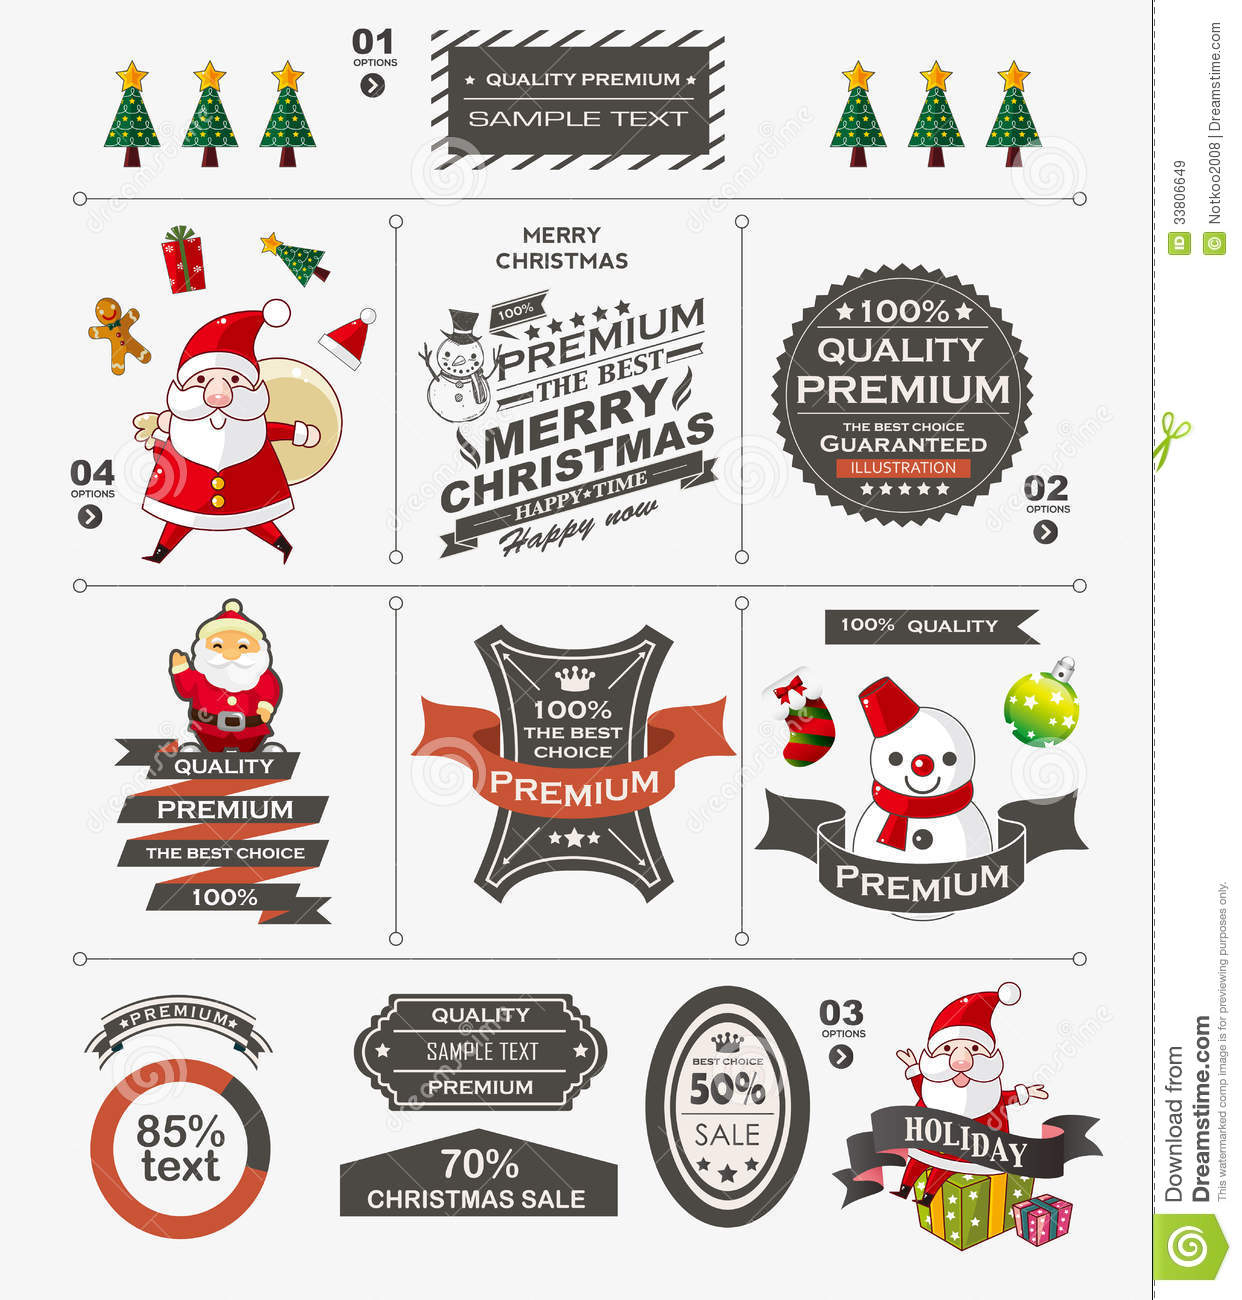 christmas vintage banner stock vector. image of classic - 33806649, Powerpoint templates